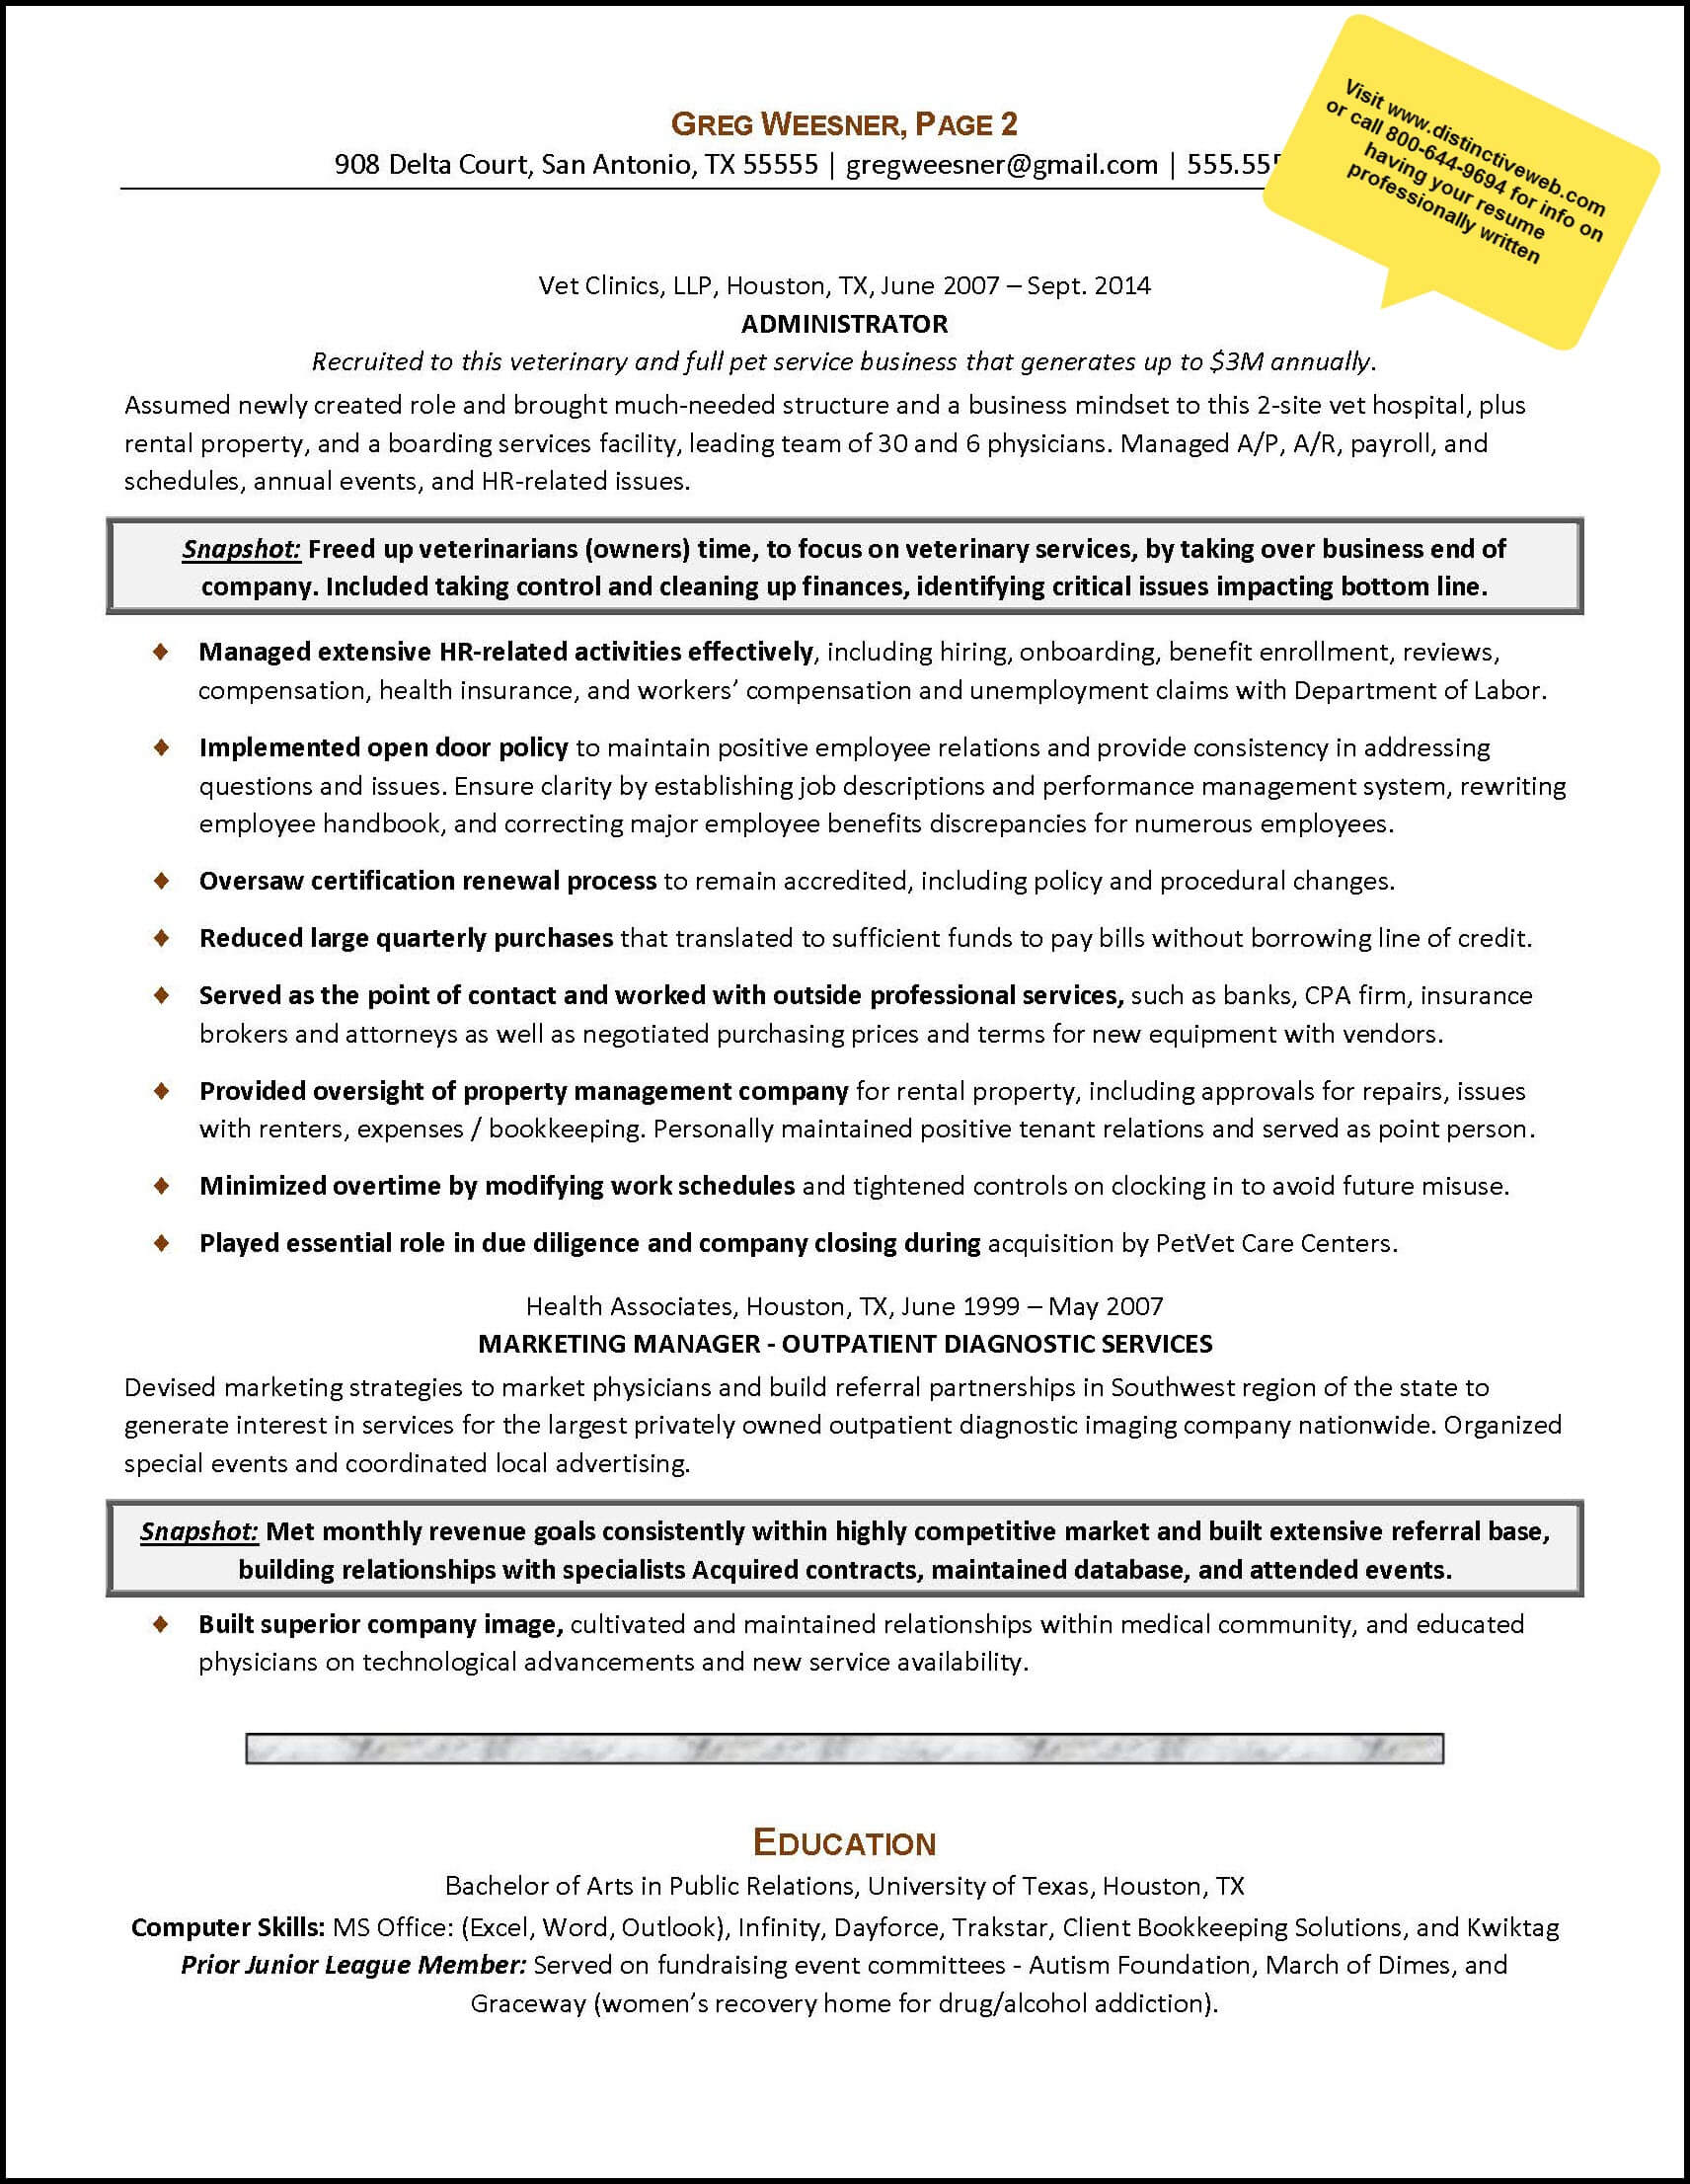 sample career change resume for an administrative services manager page 2 - Sample Resume For Manager